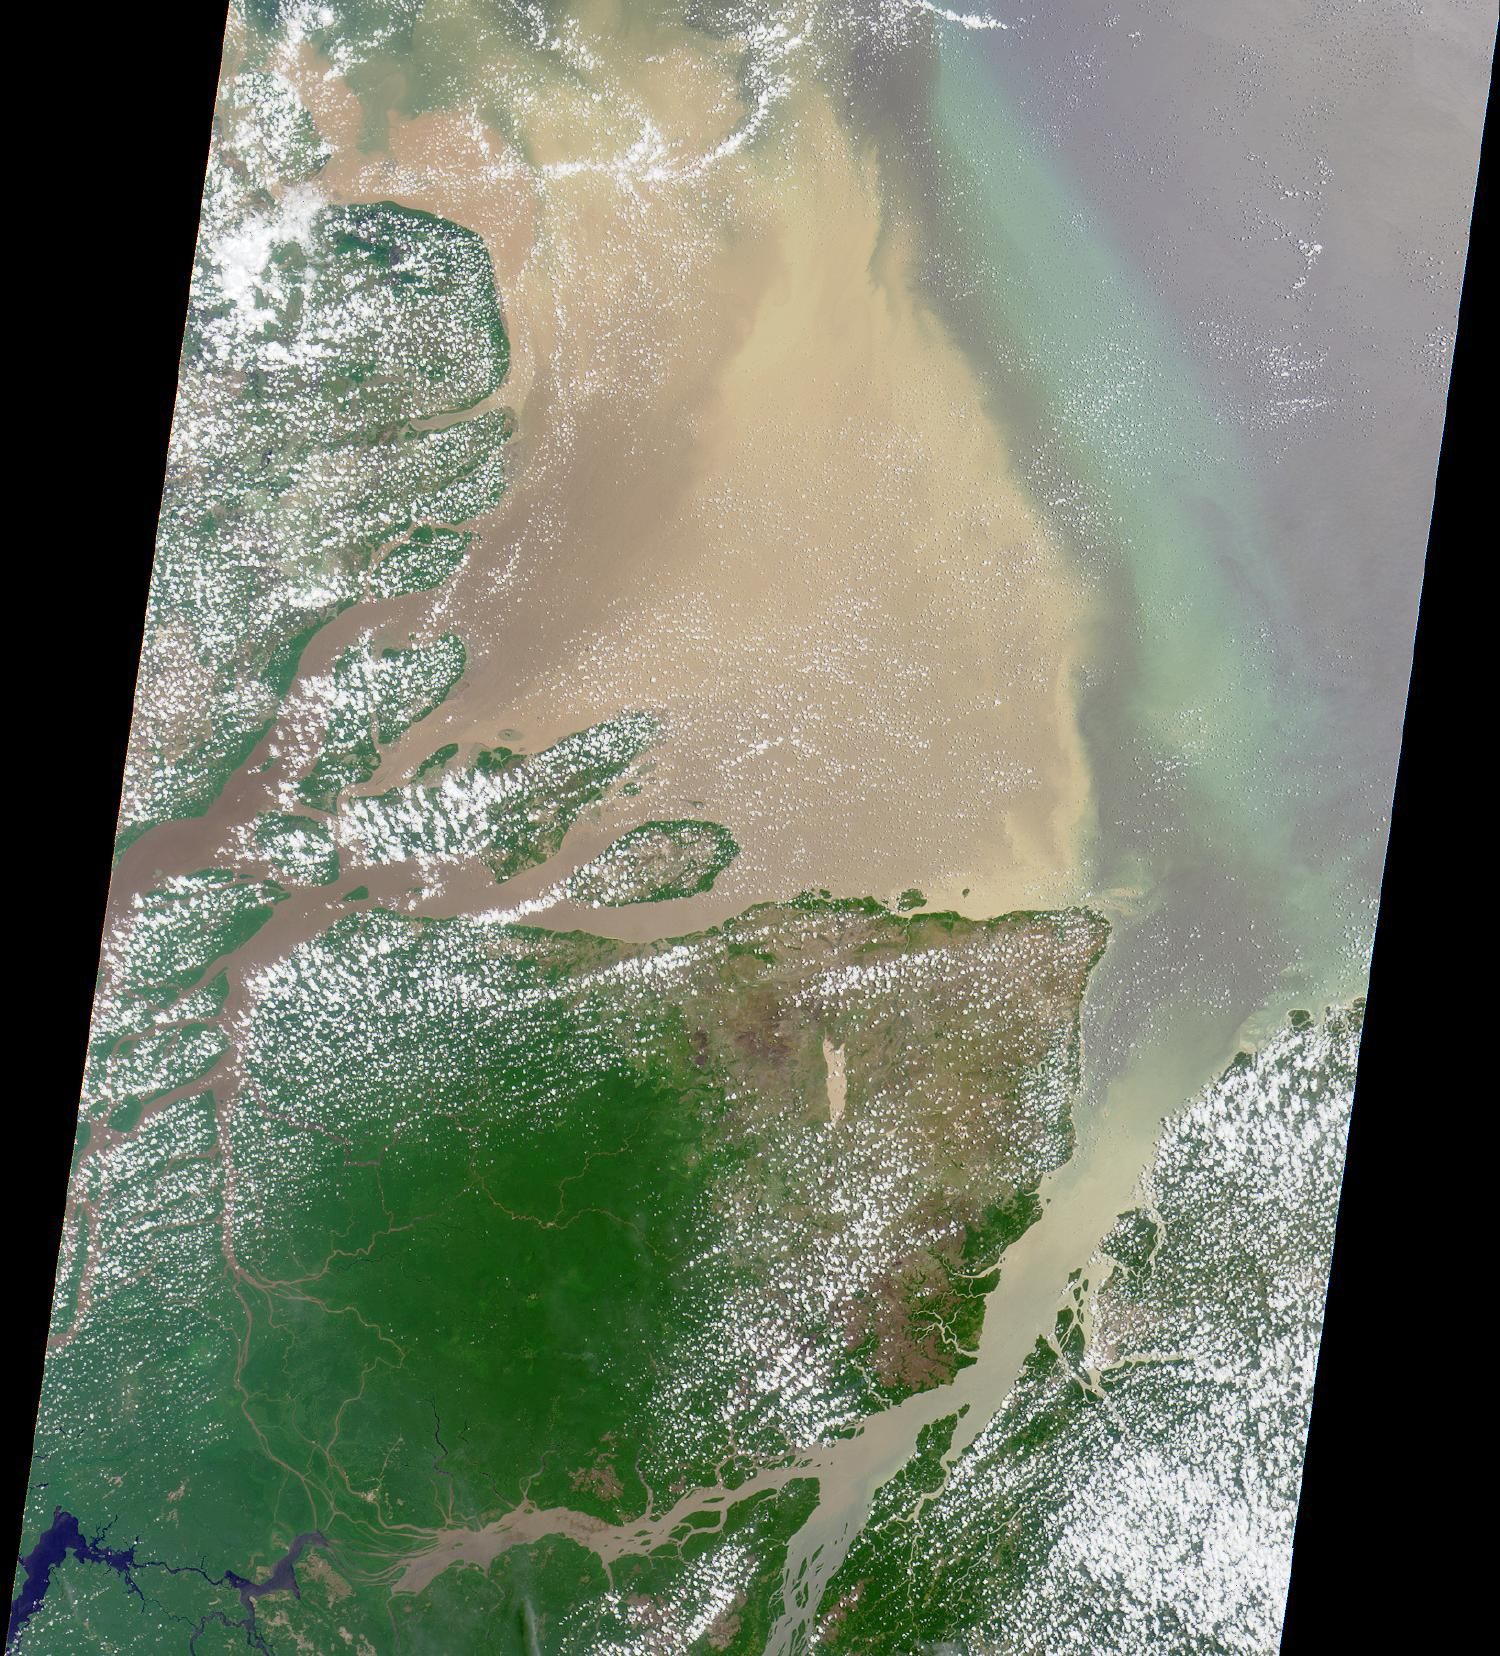 Amazon River's Mouth Satellite Photo, Brazil